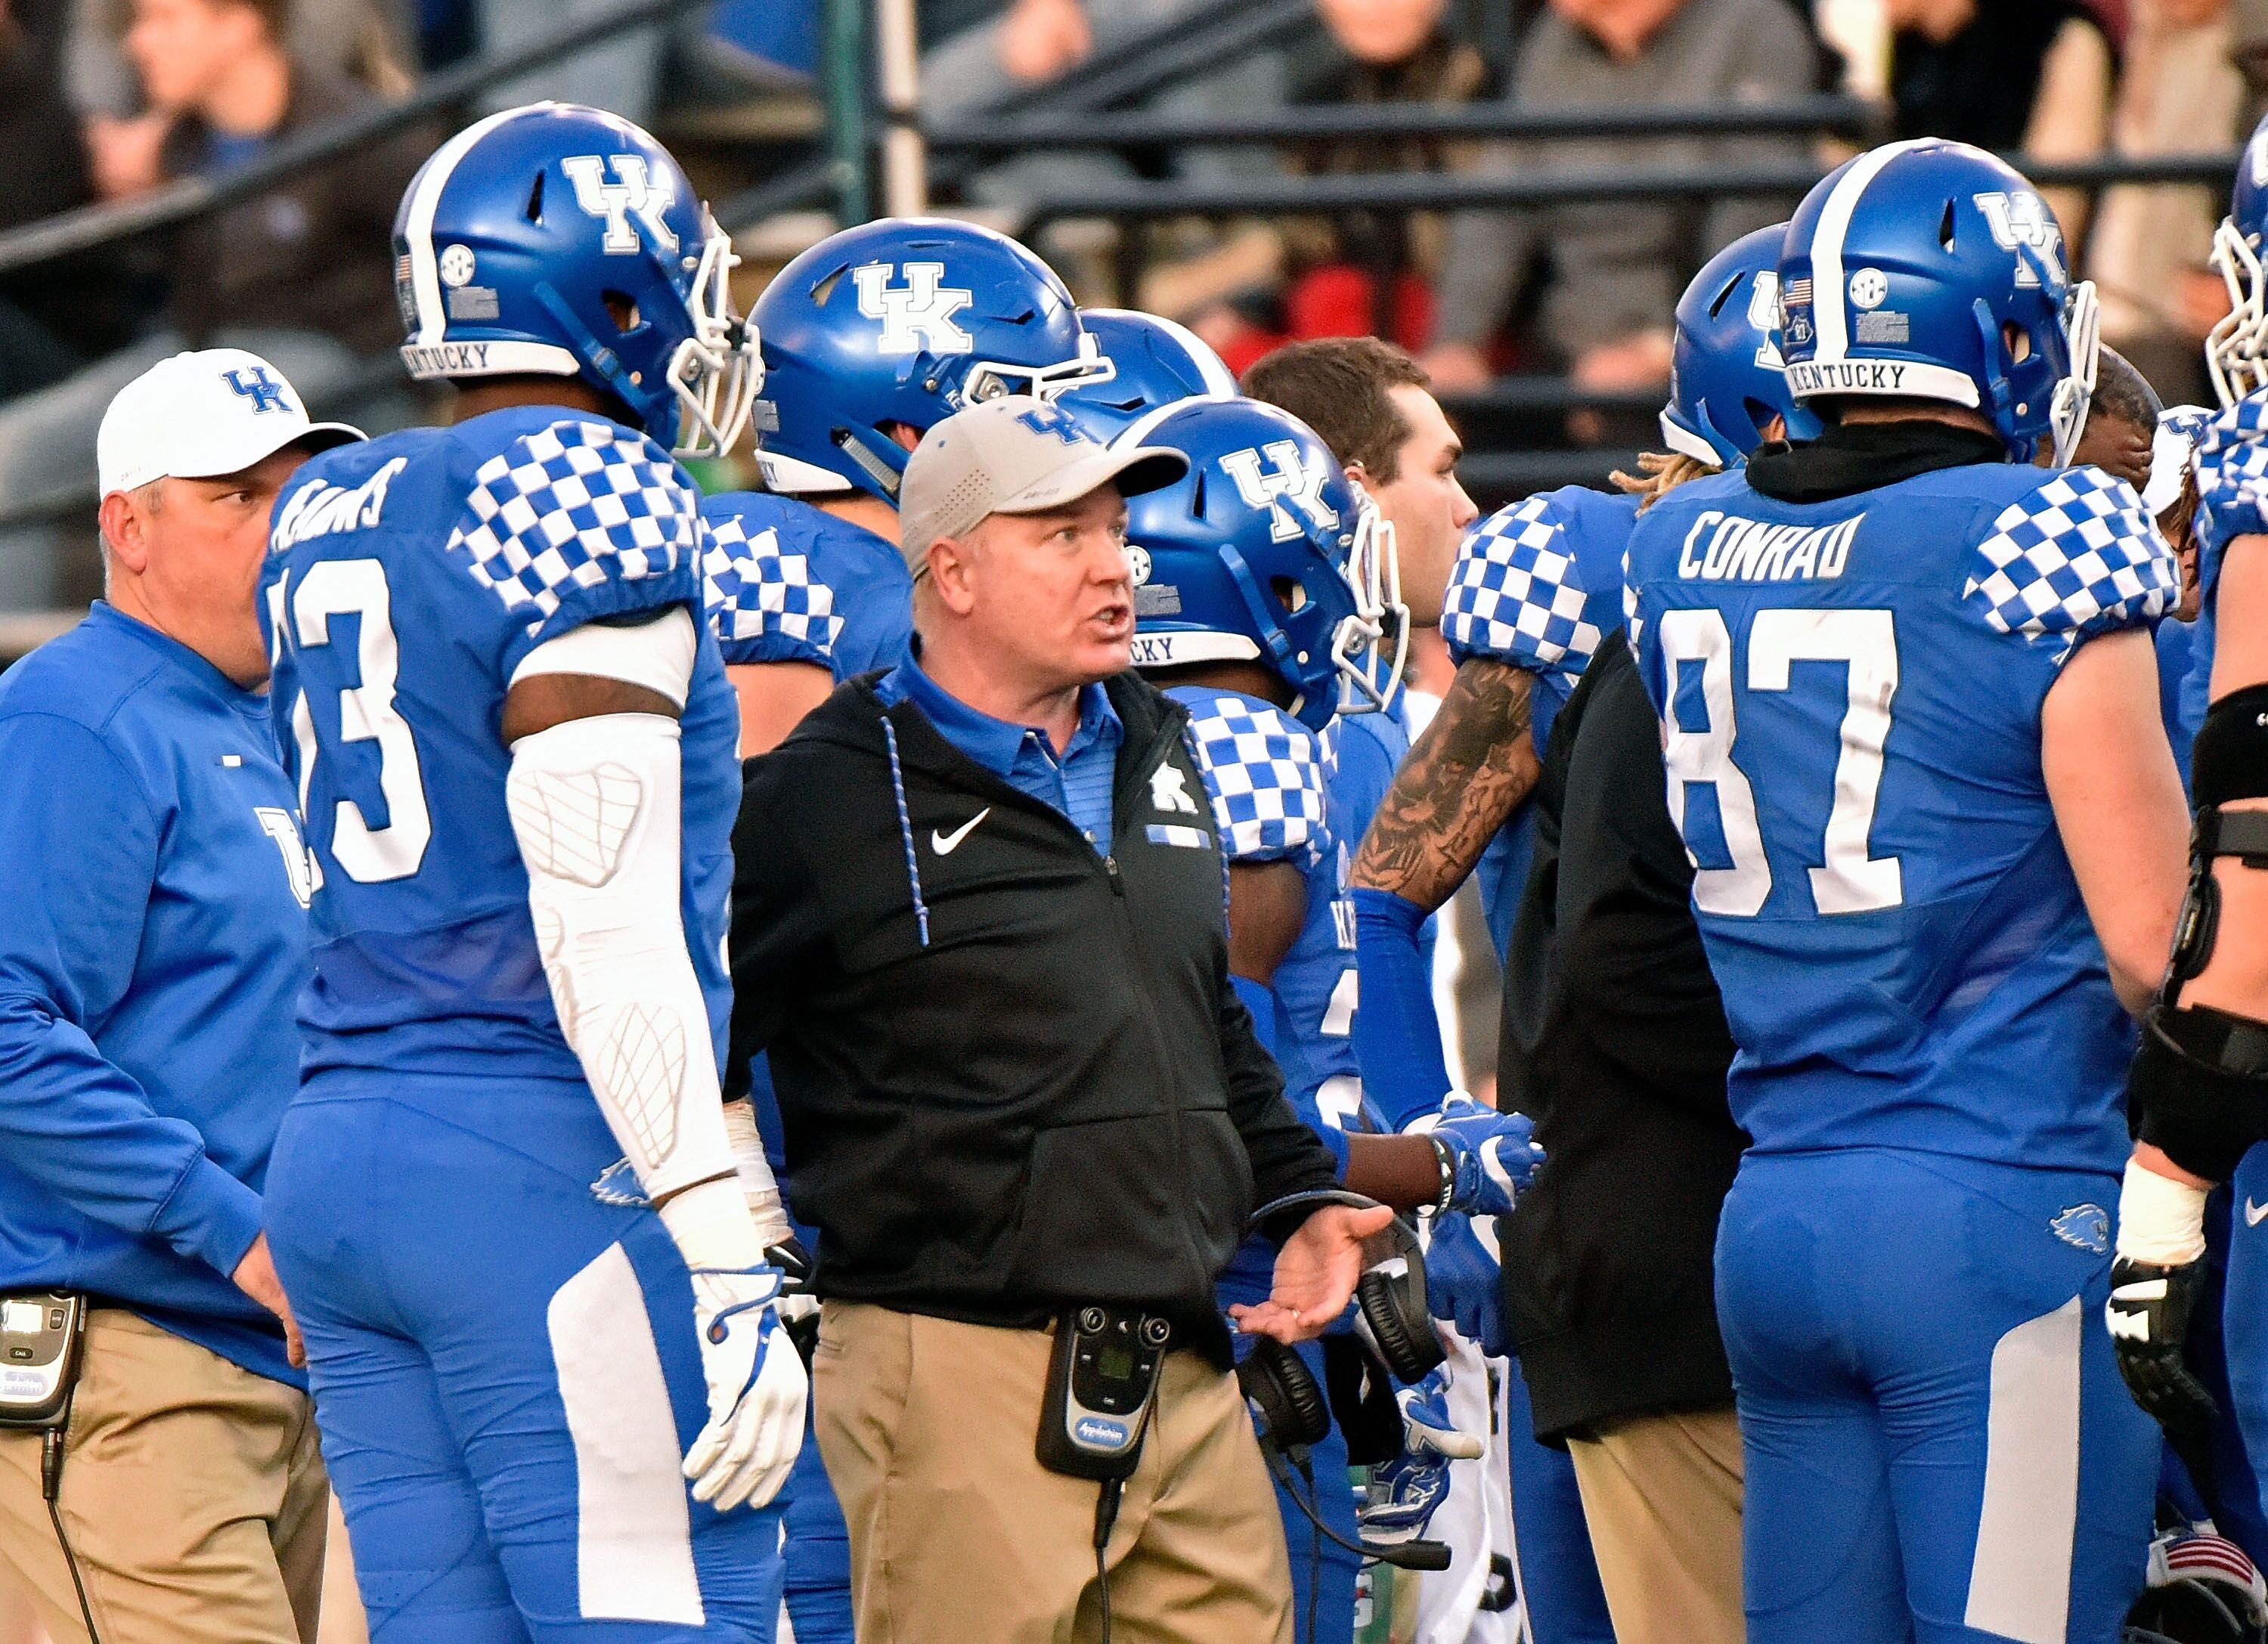 Kentucky Basketball Wildcats Have Found Their Groove: UK Football: Two Freshmen Most Likely To Start For The